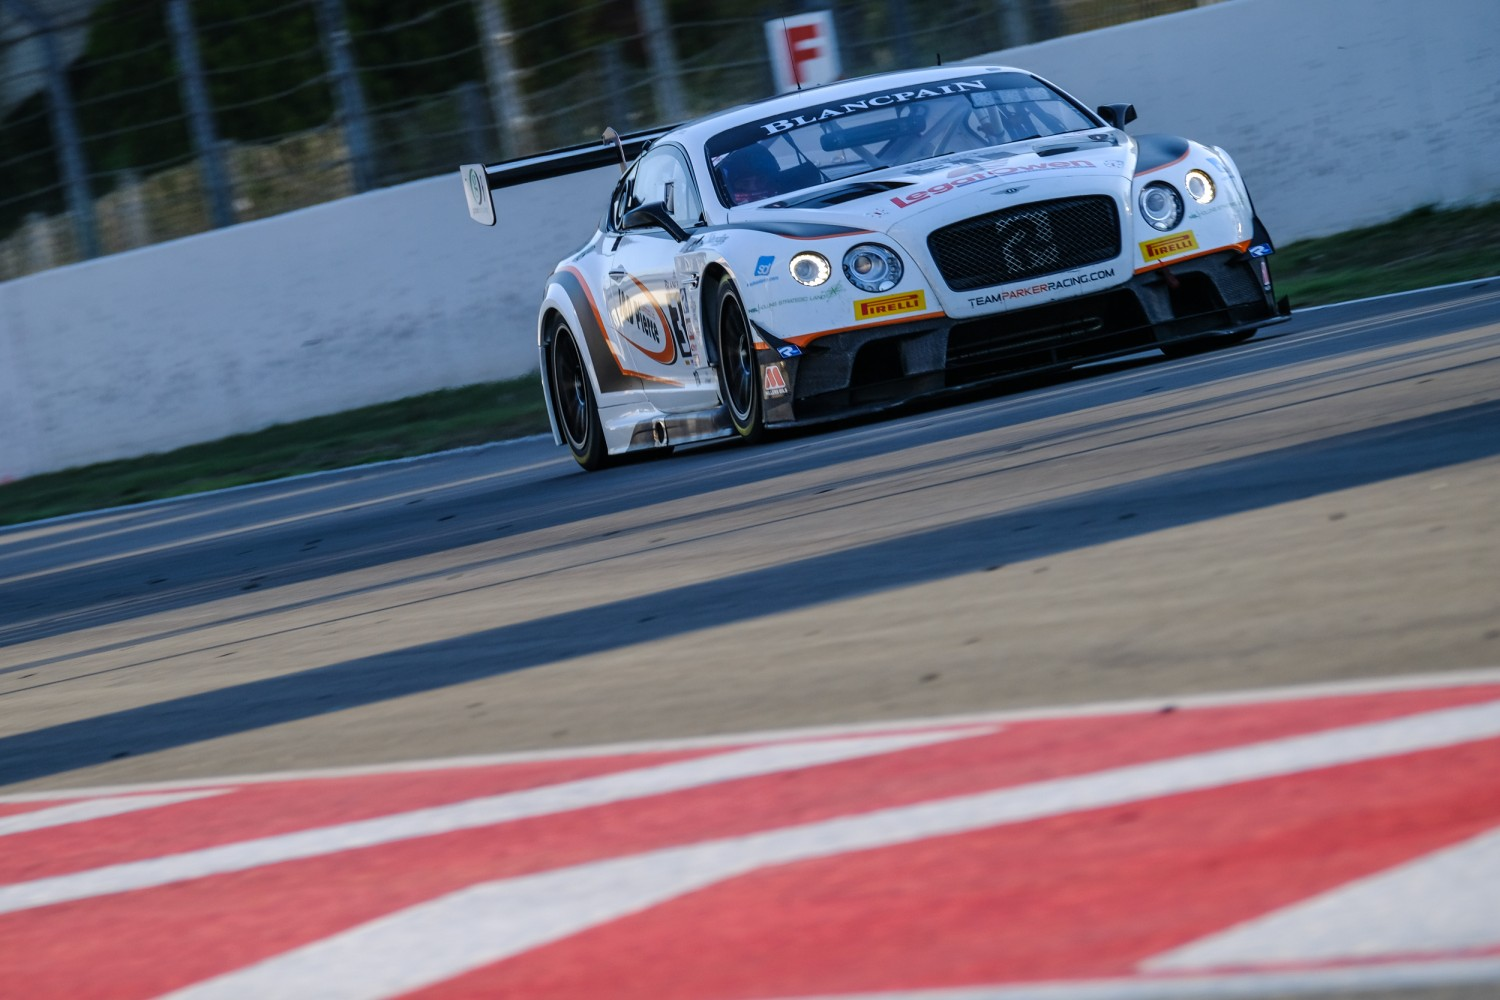 #31 Team Parker Racing** GBR Bentley Continental GT3 Pro-Am Cup Derek Pierce GBR Rob Smith GBR Seb Morris GBR, Free Practice  | SRO / Dirk Bogaerts Photography